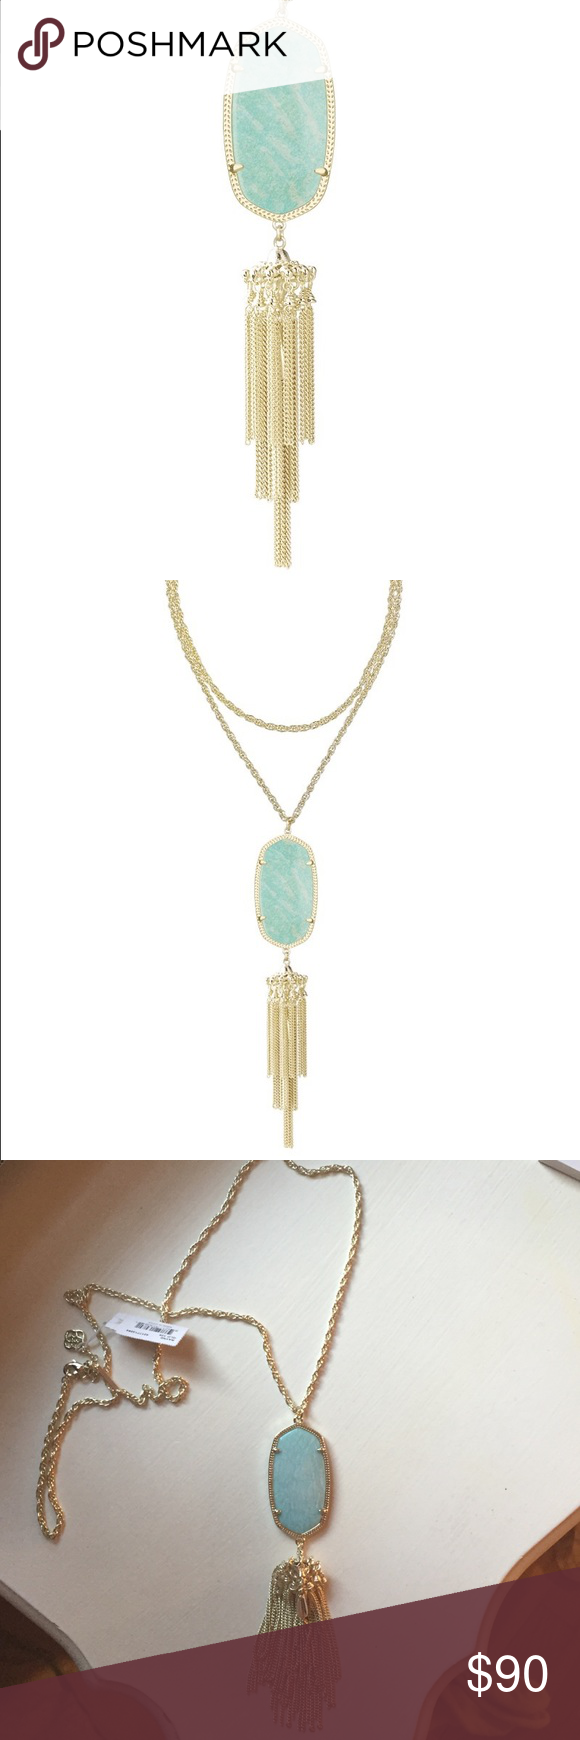 Rayne necklace in Amazonite Gorgeous in person- match the Alex earrings in my closet Kendra Scott Jewelry Necklaces